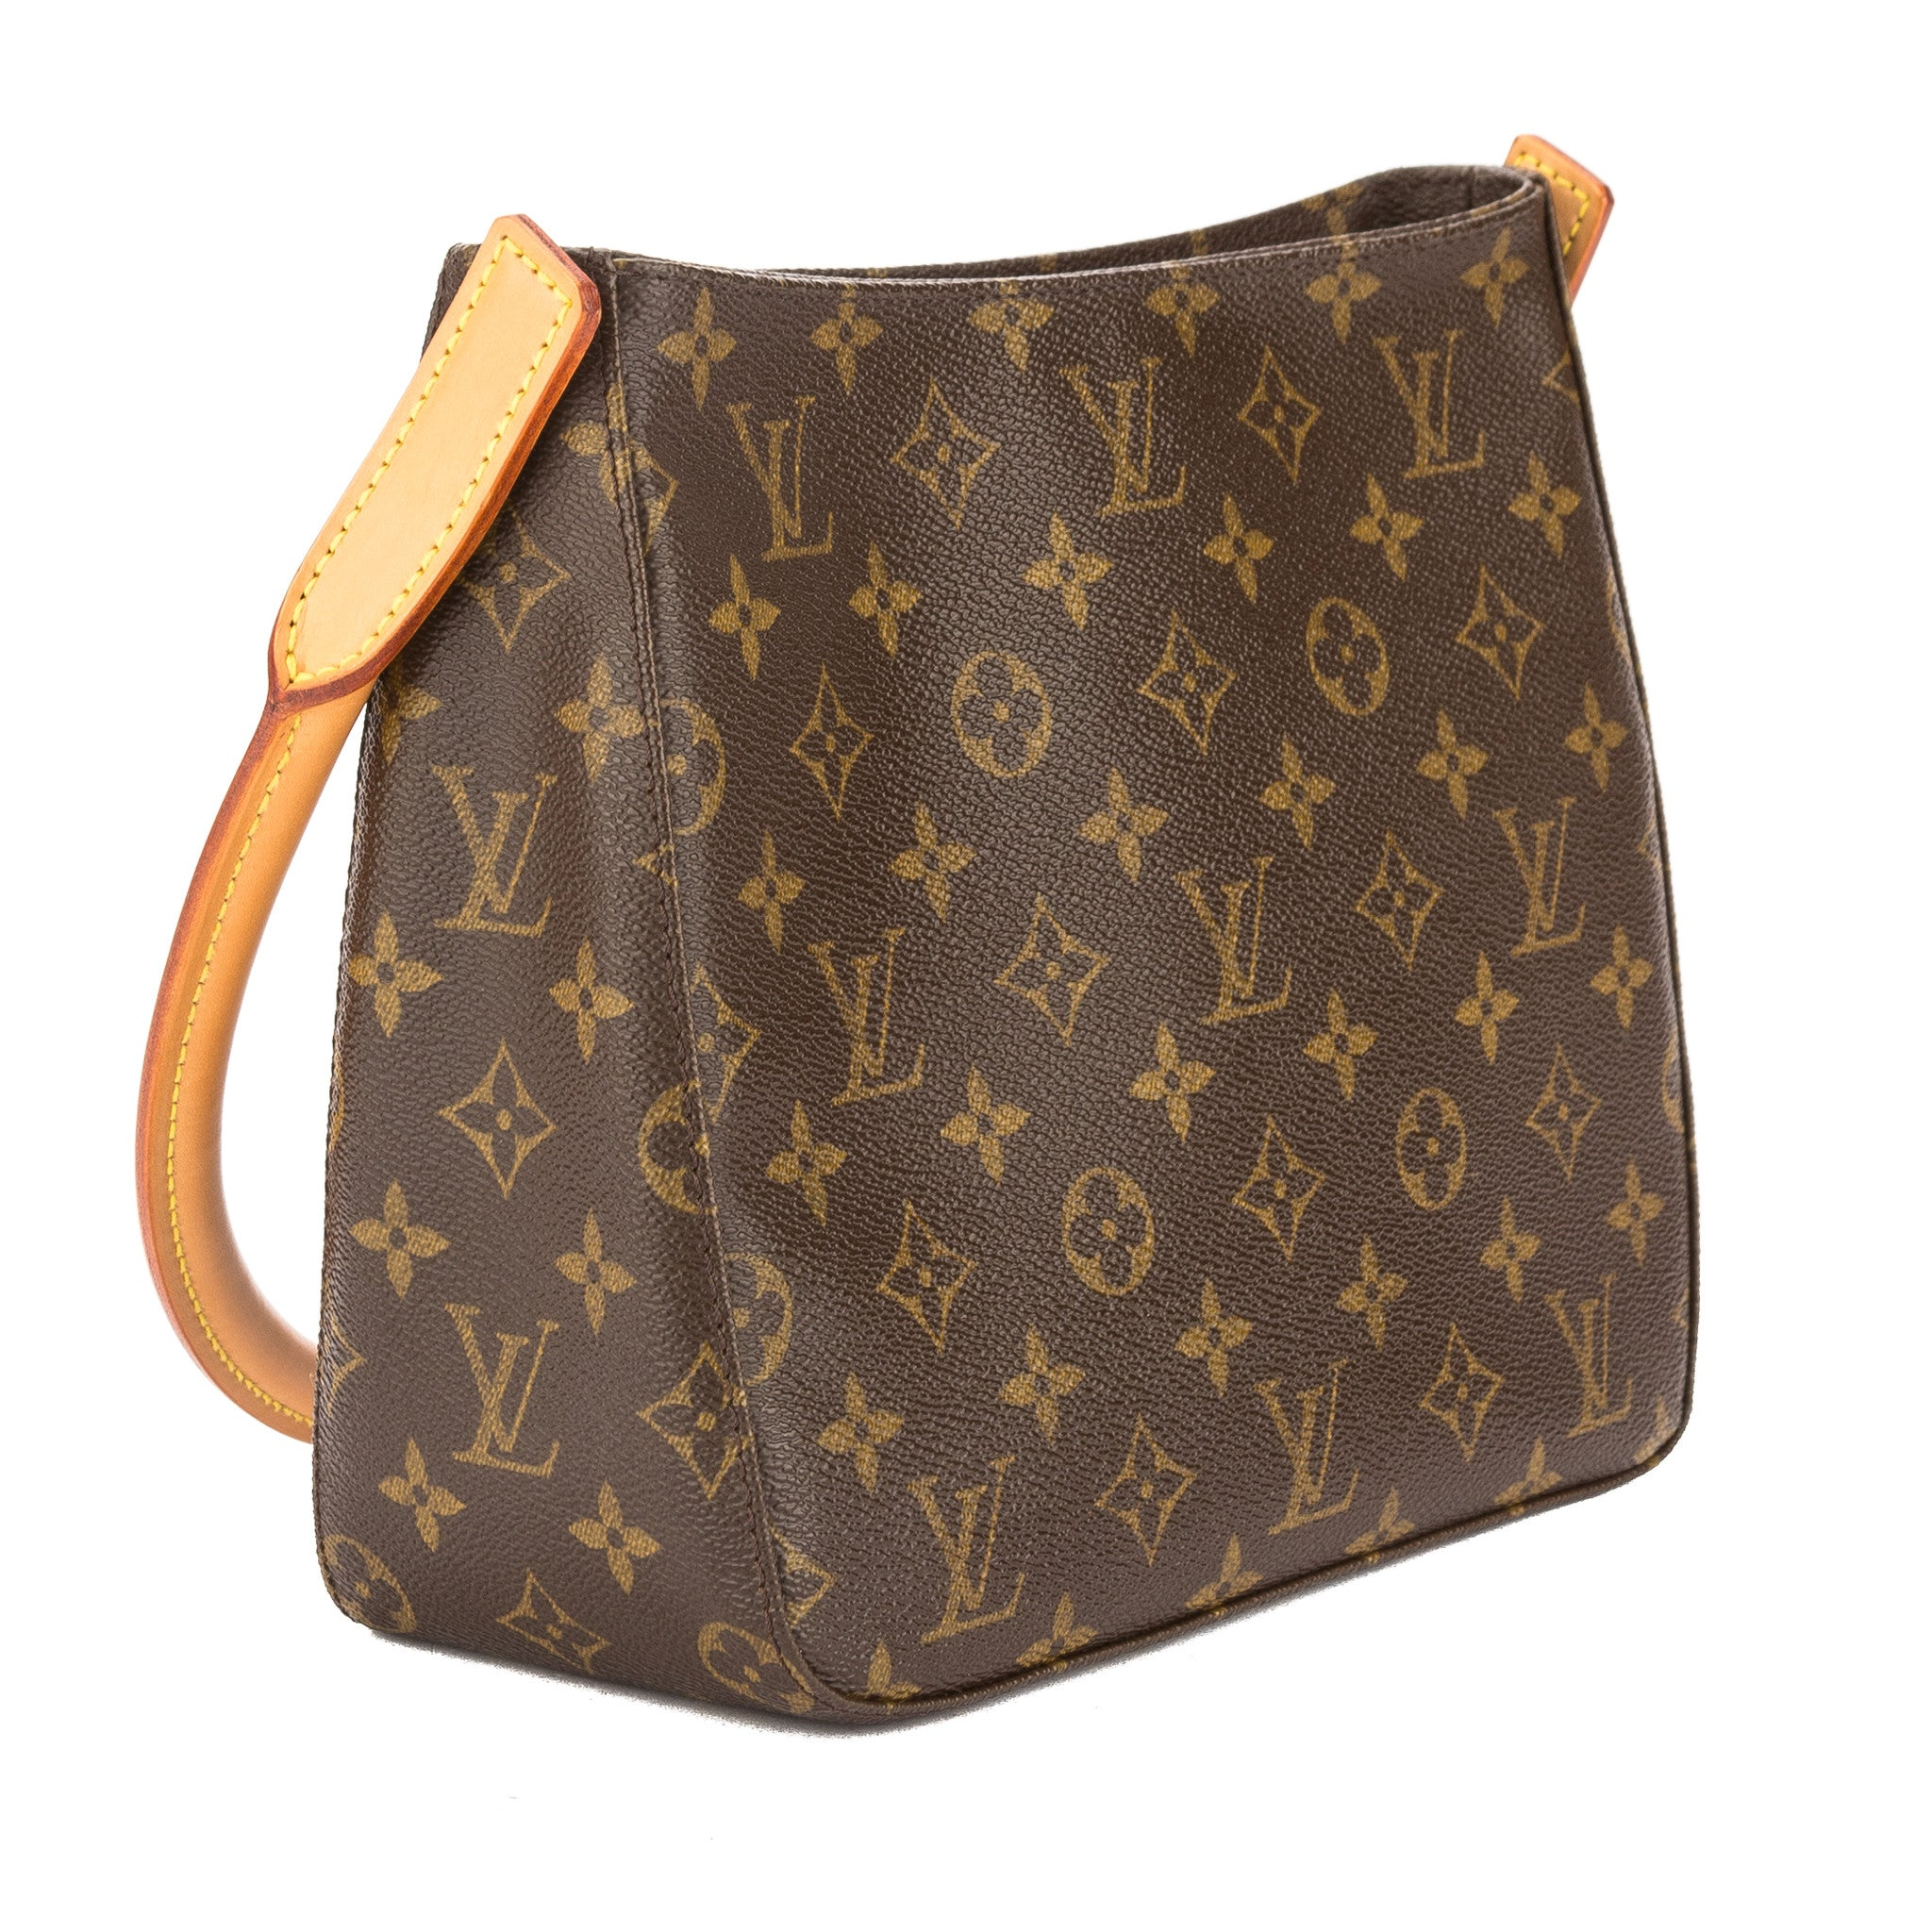 92661651e335 Louis Vuitton Monogram Canvas Looping MM Bag (Pre Owned) - 3449004 ...